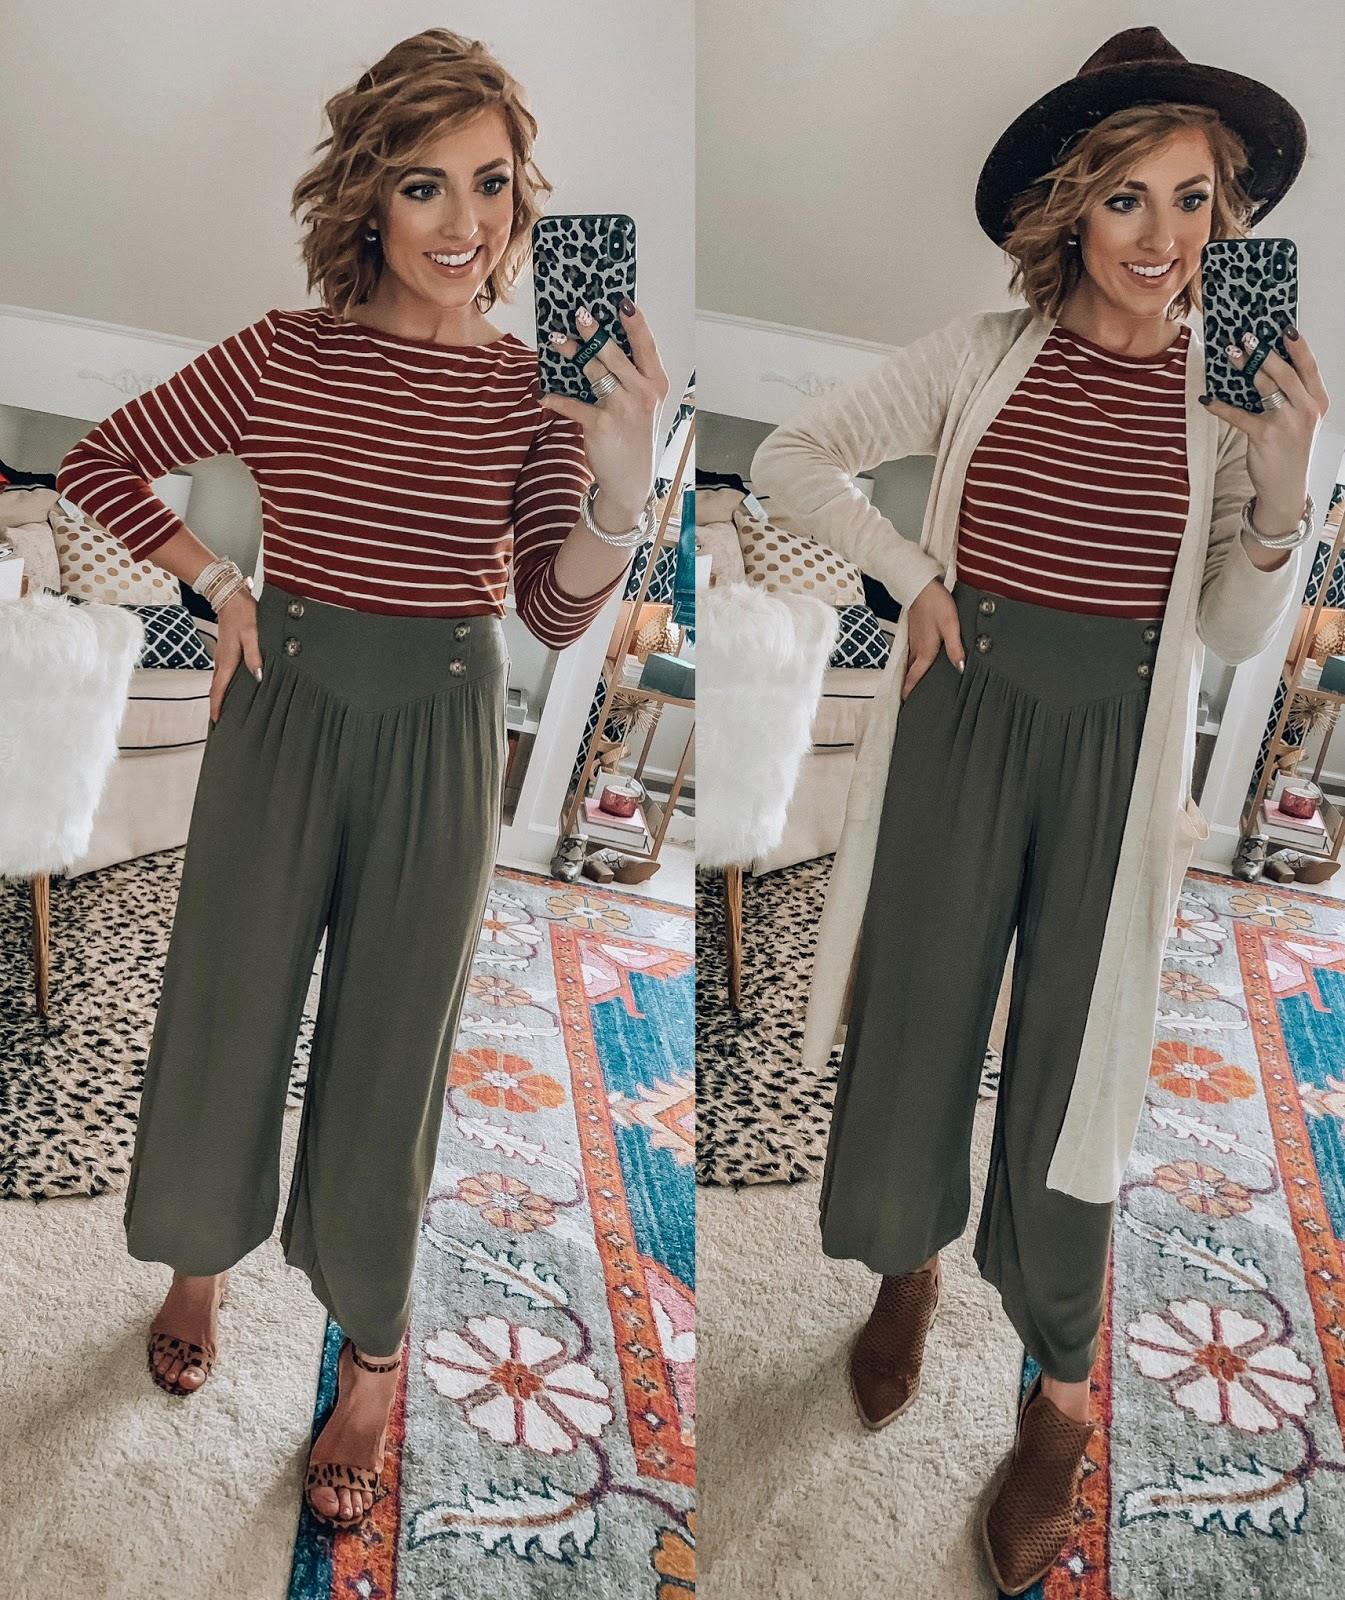 Target Fall Finds: Part Three - Palazzo Pants Styled Two Ways - Something Delightful Blog #FallStyle #TargetStye